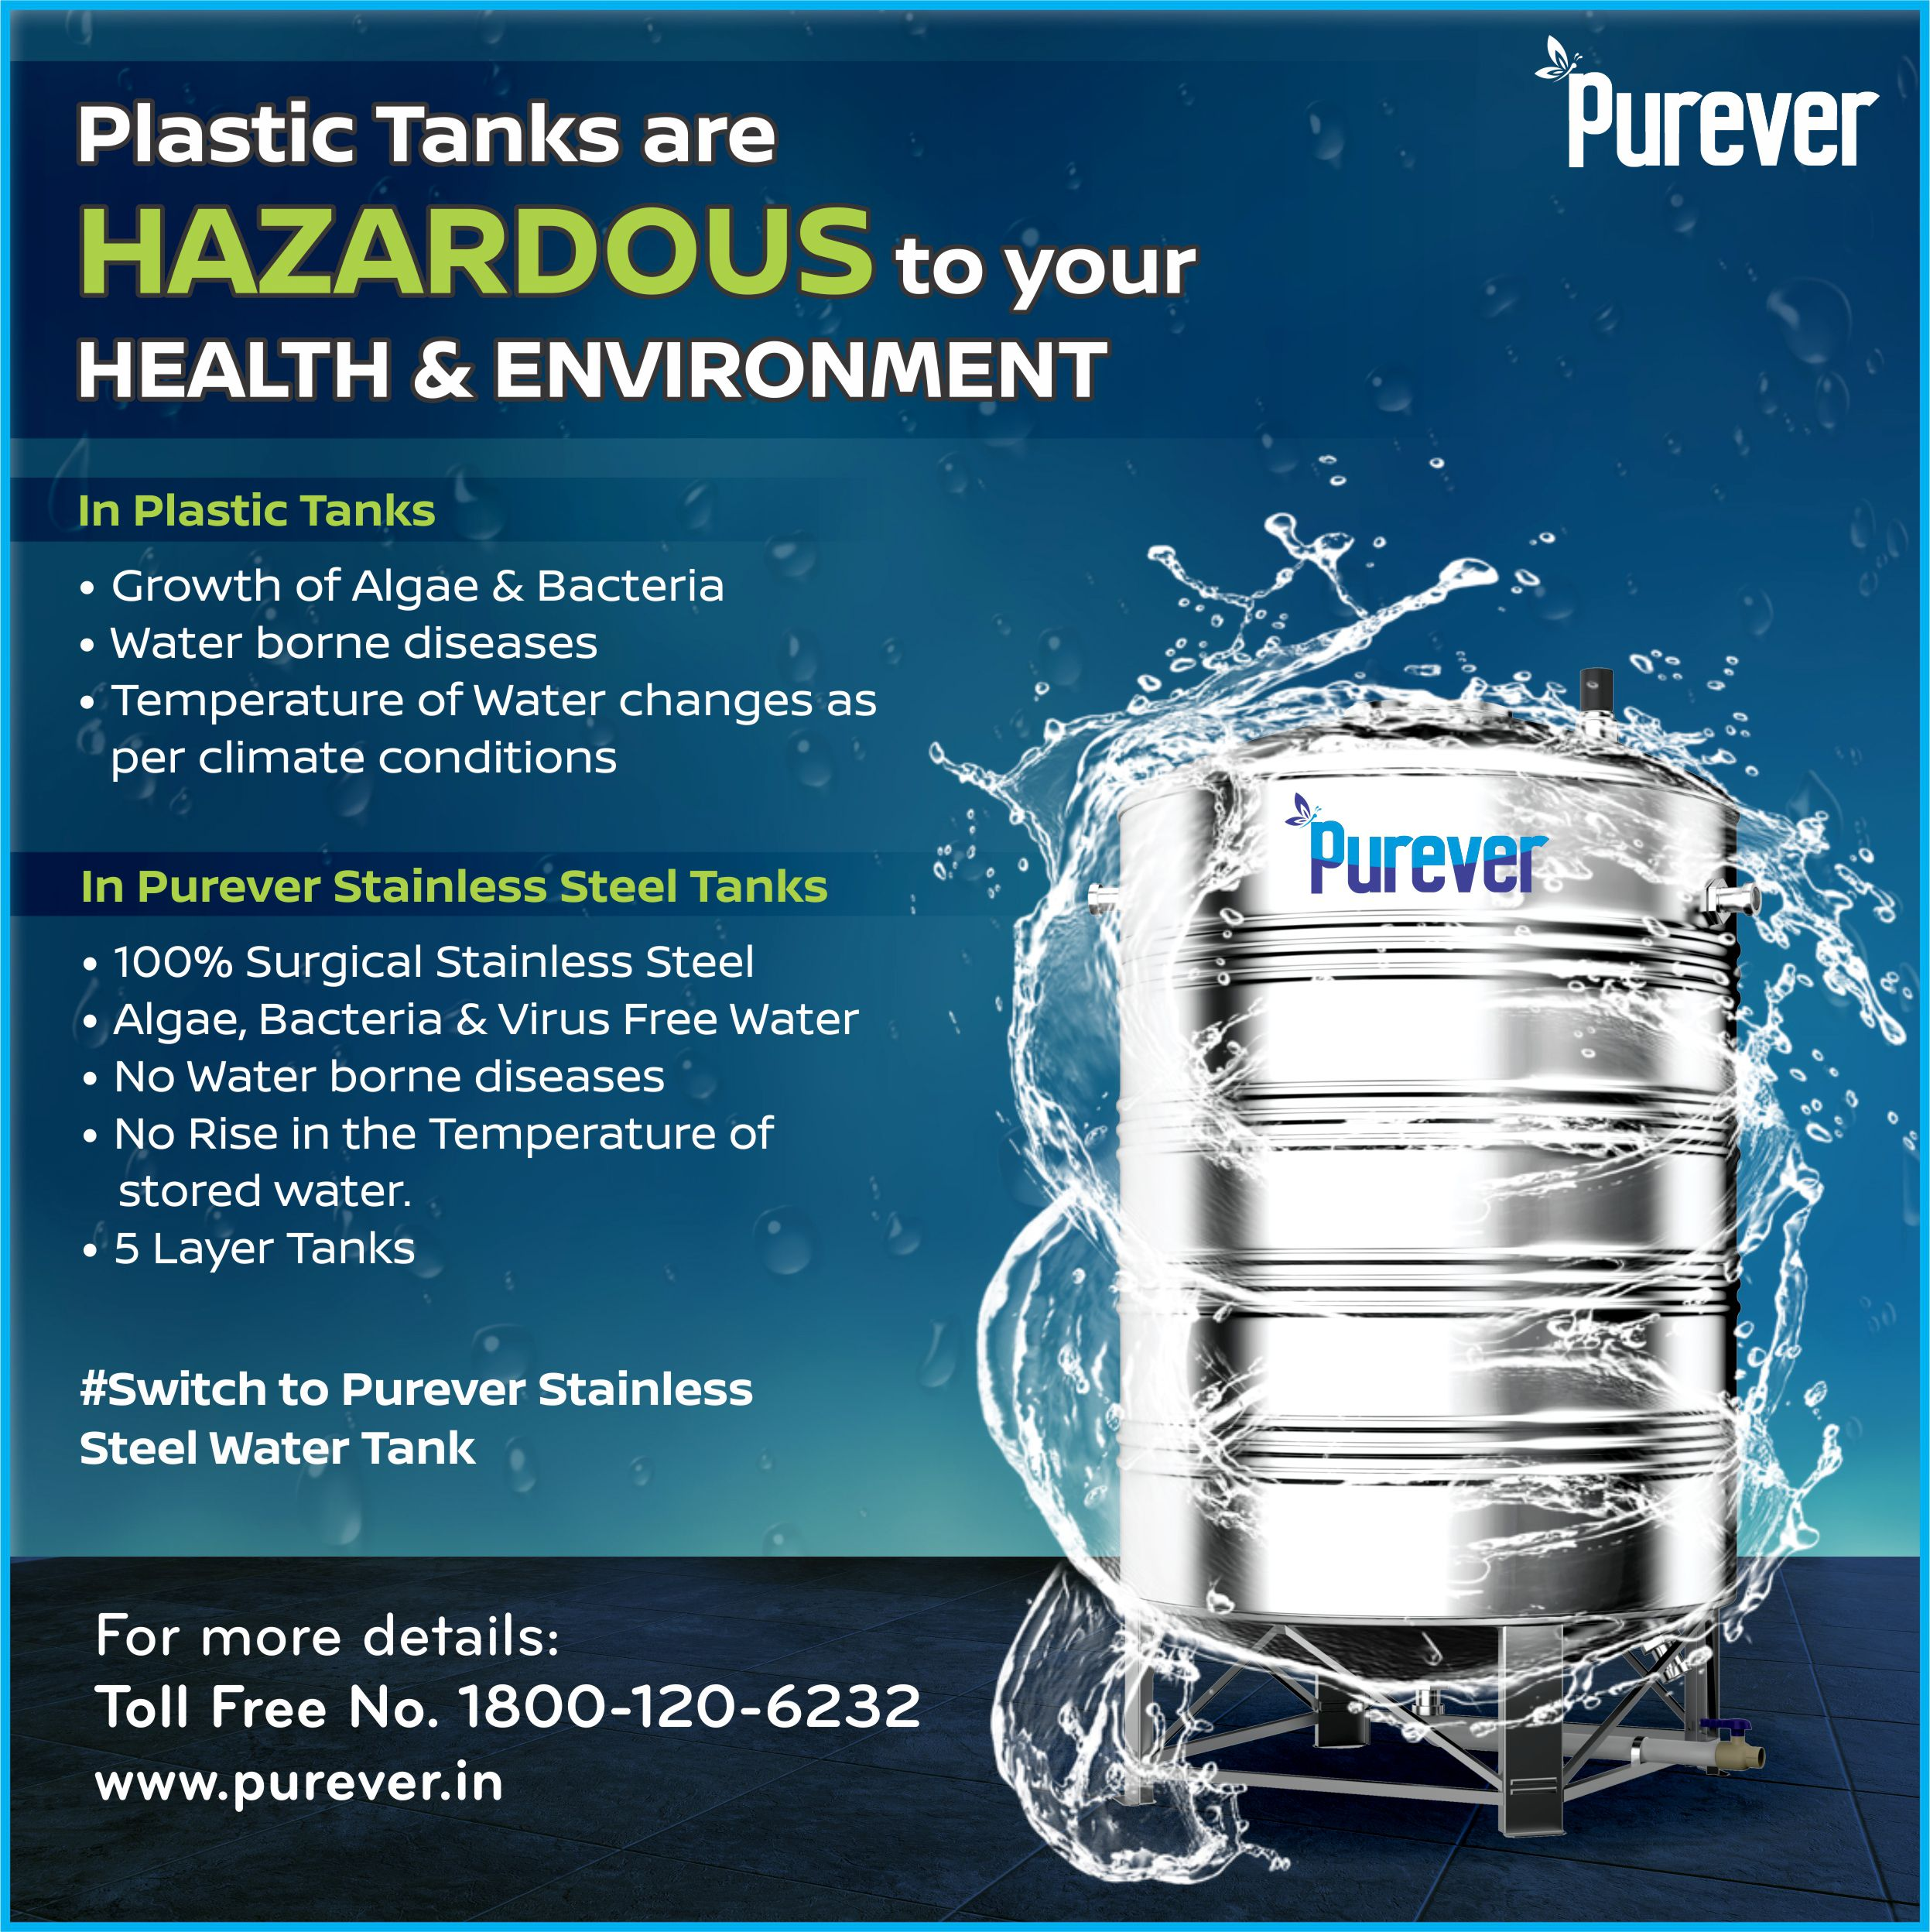 Plastic Tanks Are Hazardous Health Environment Purever Stainless Steel Tanks 100 Surgical Stainless Stainless Steel Tanks Steel Water Tanks Steel Water